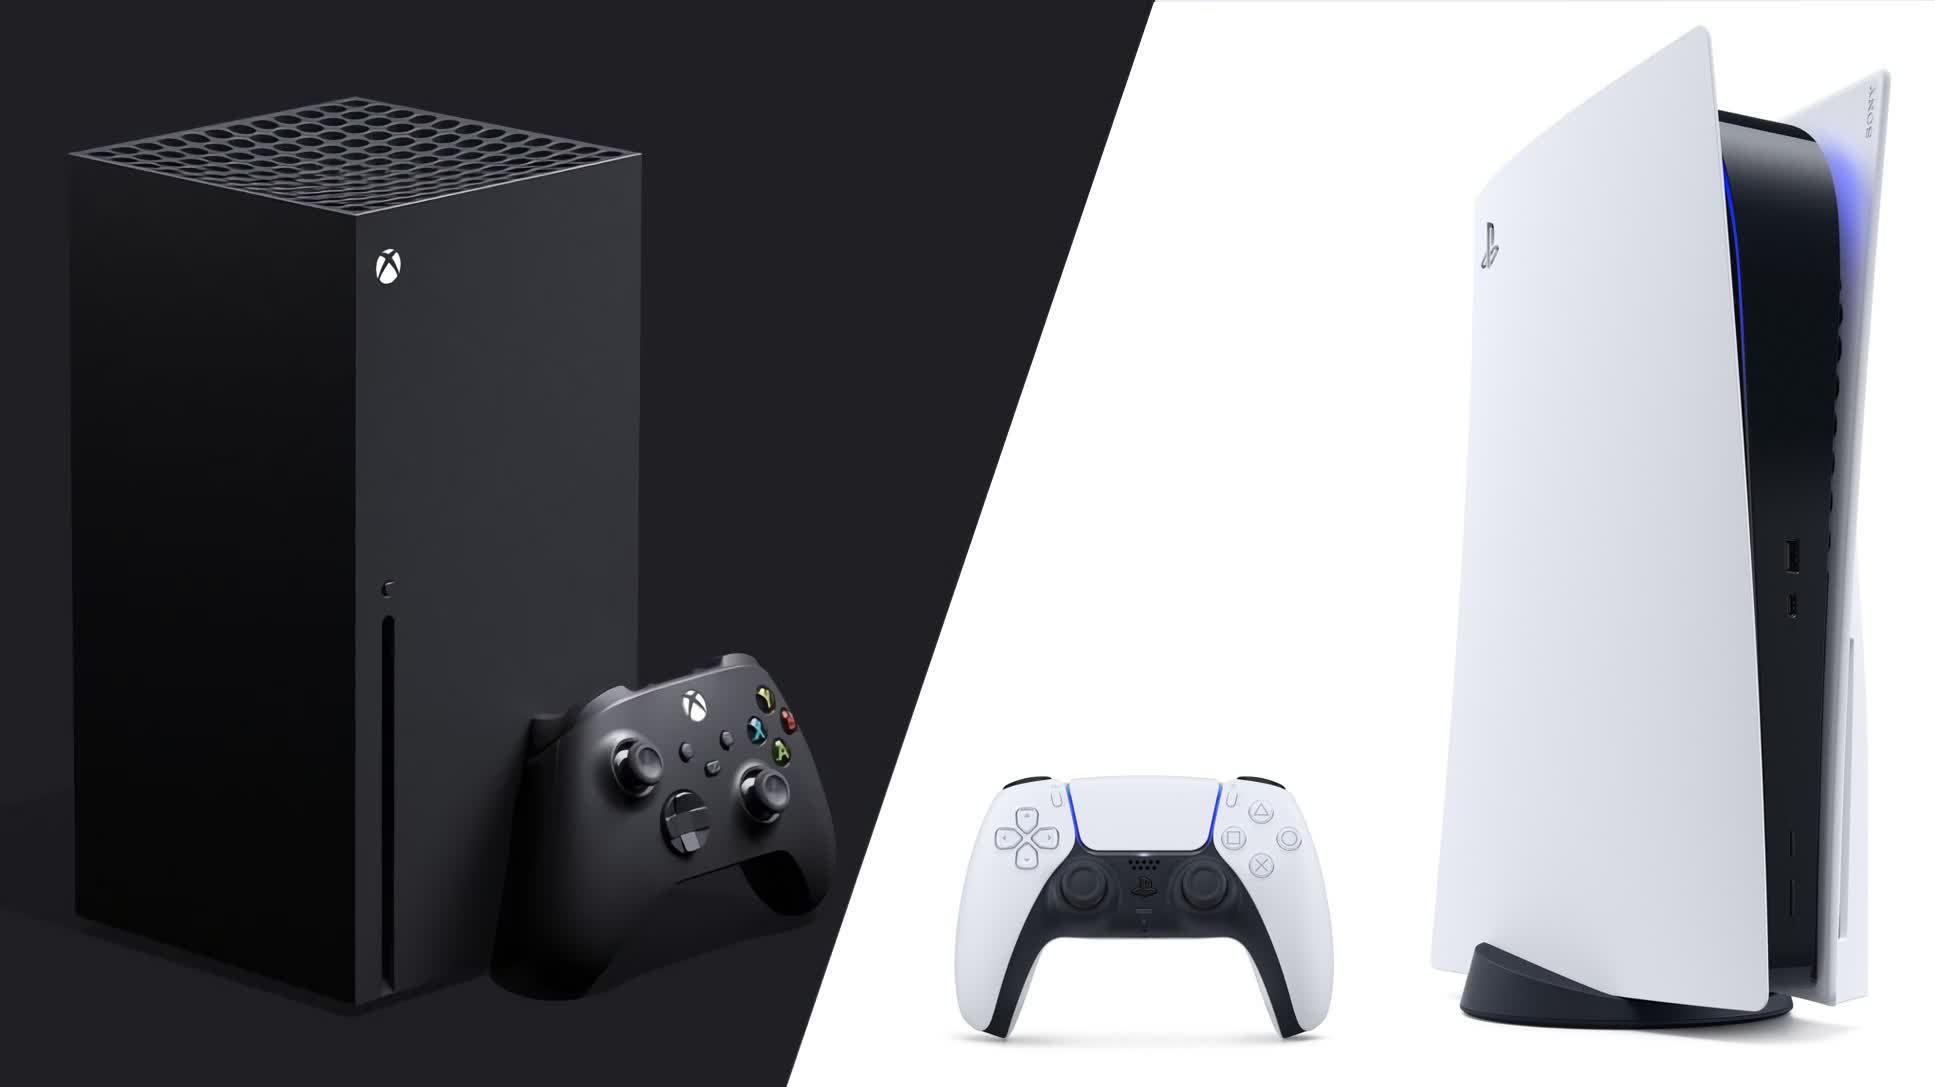 Xbox Christmas Sales 2021 Xbox Series X Predicted To Have Double The Sales Of Playstation 5 By Christmas Techspot